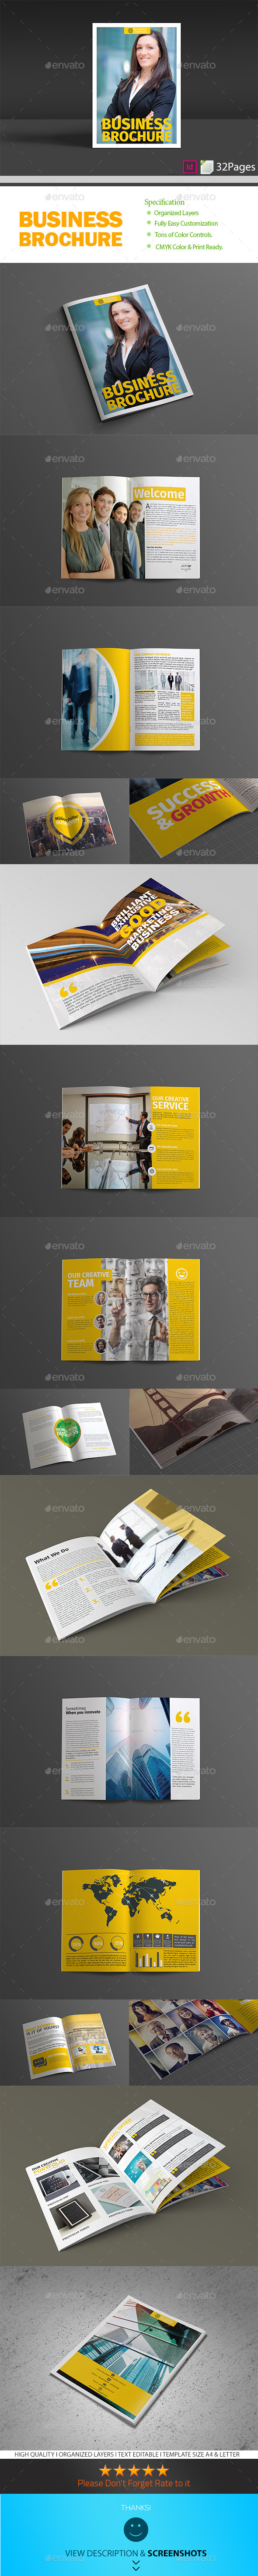 GraphicRiver Business Brochure 9268884